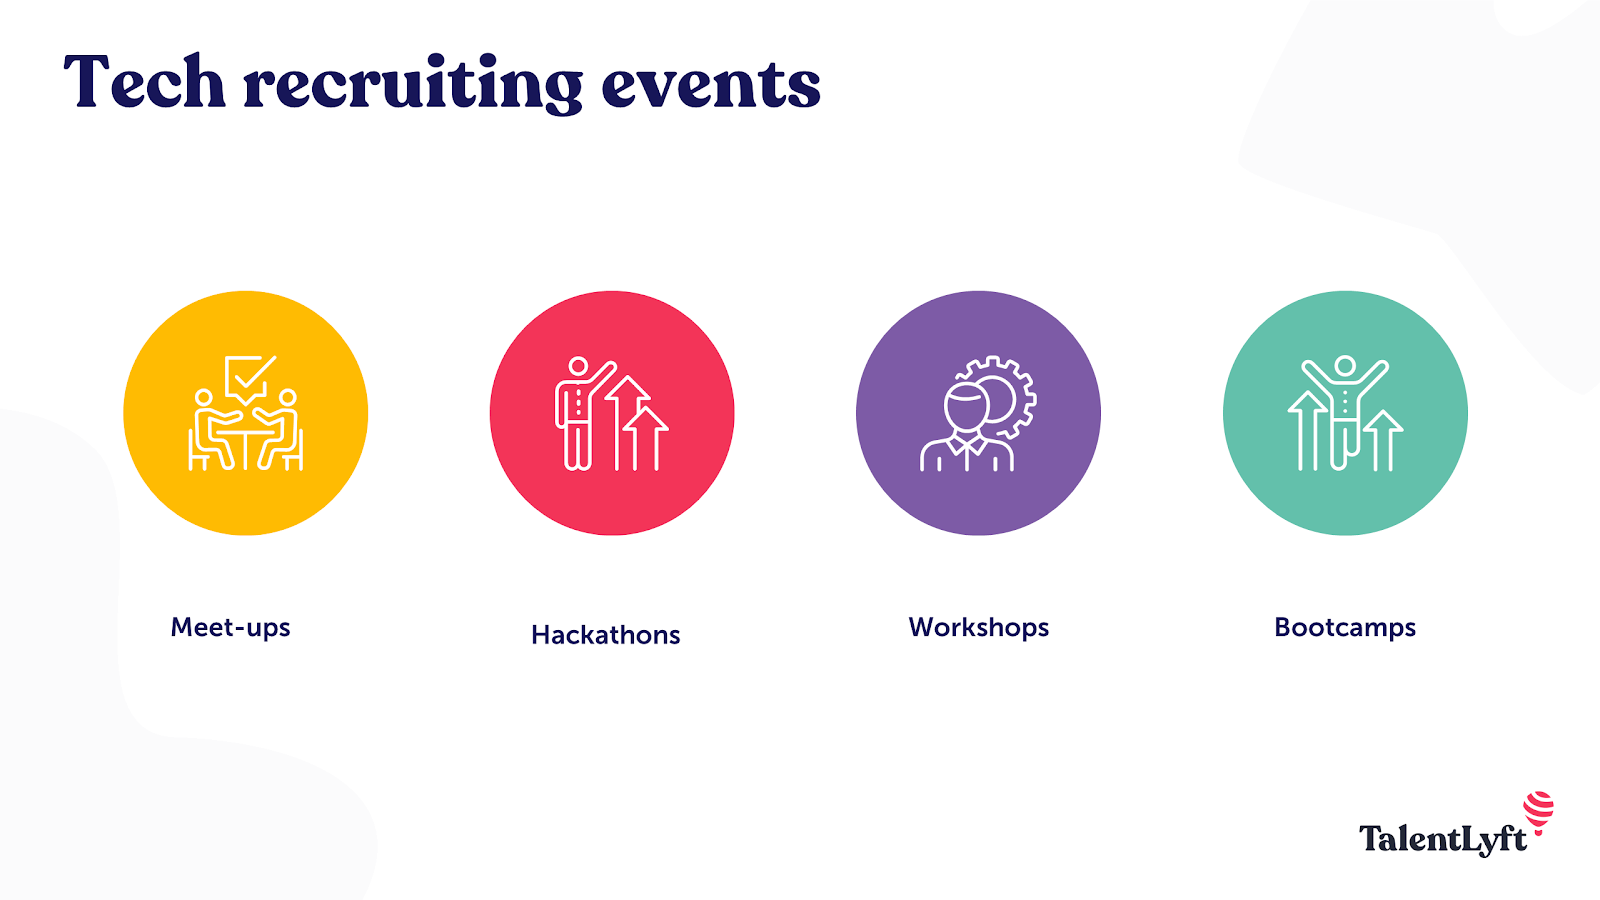 Tech recruiting events